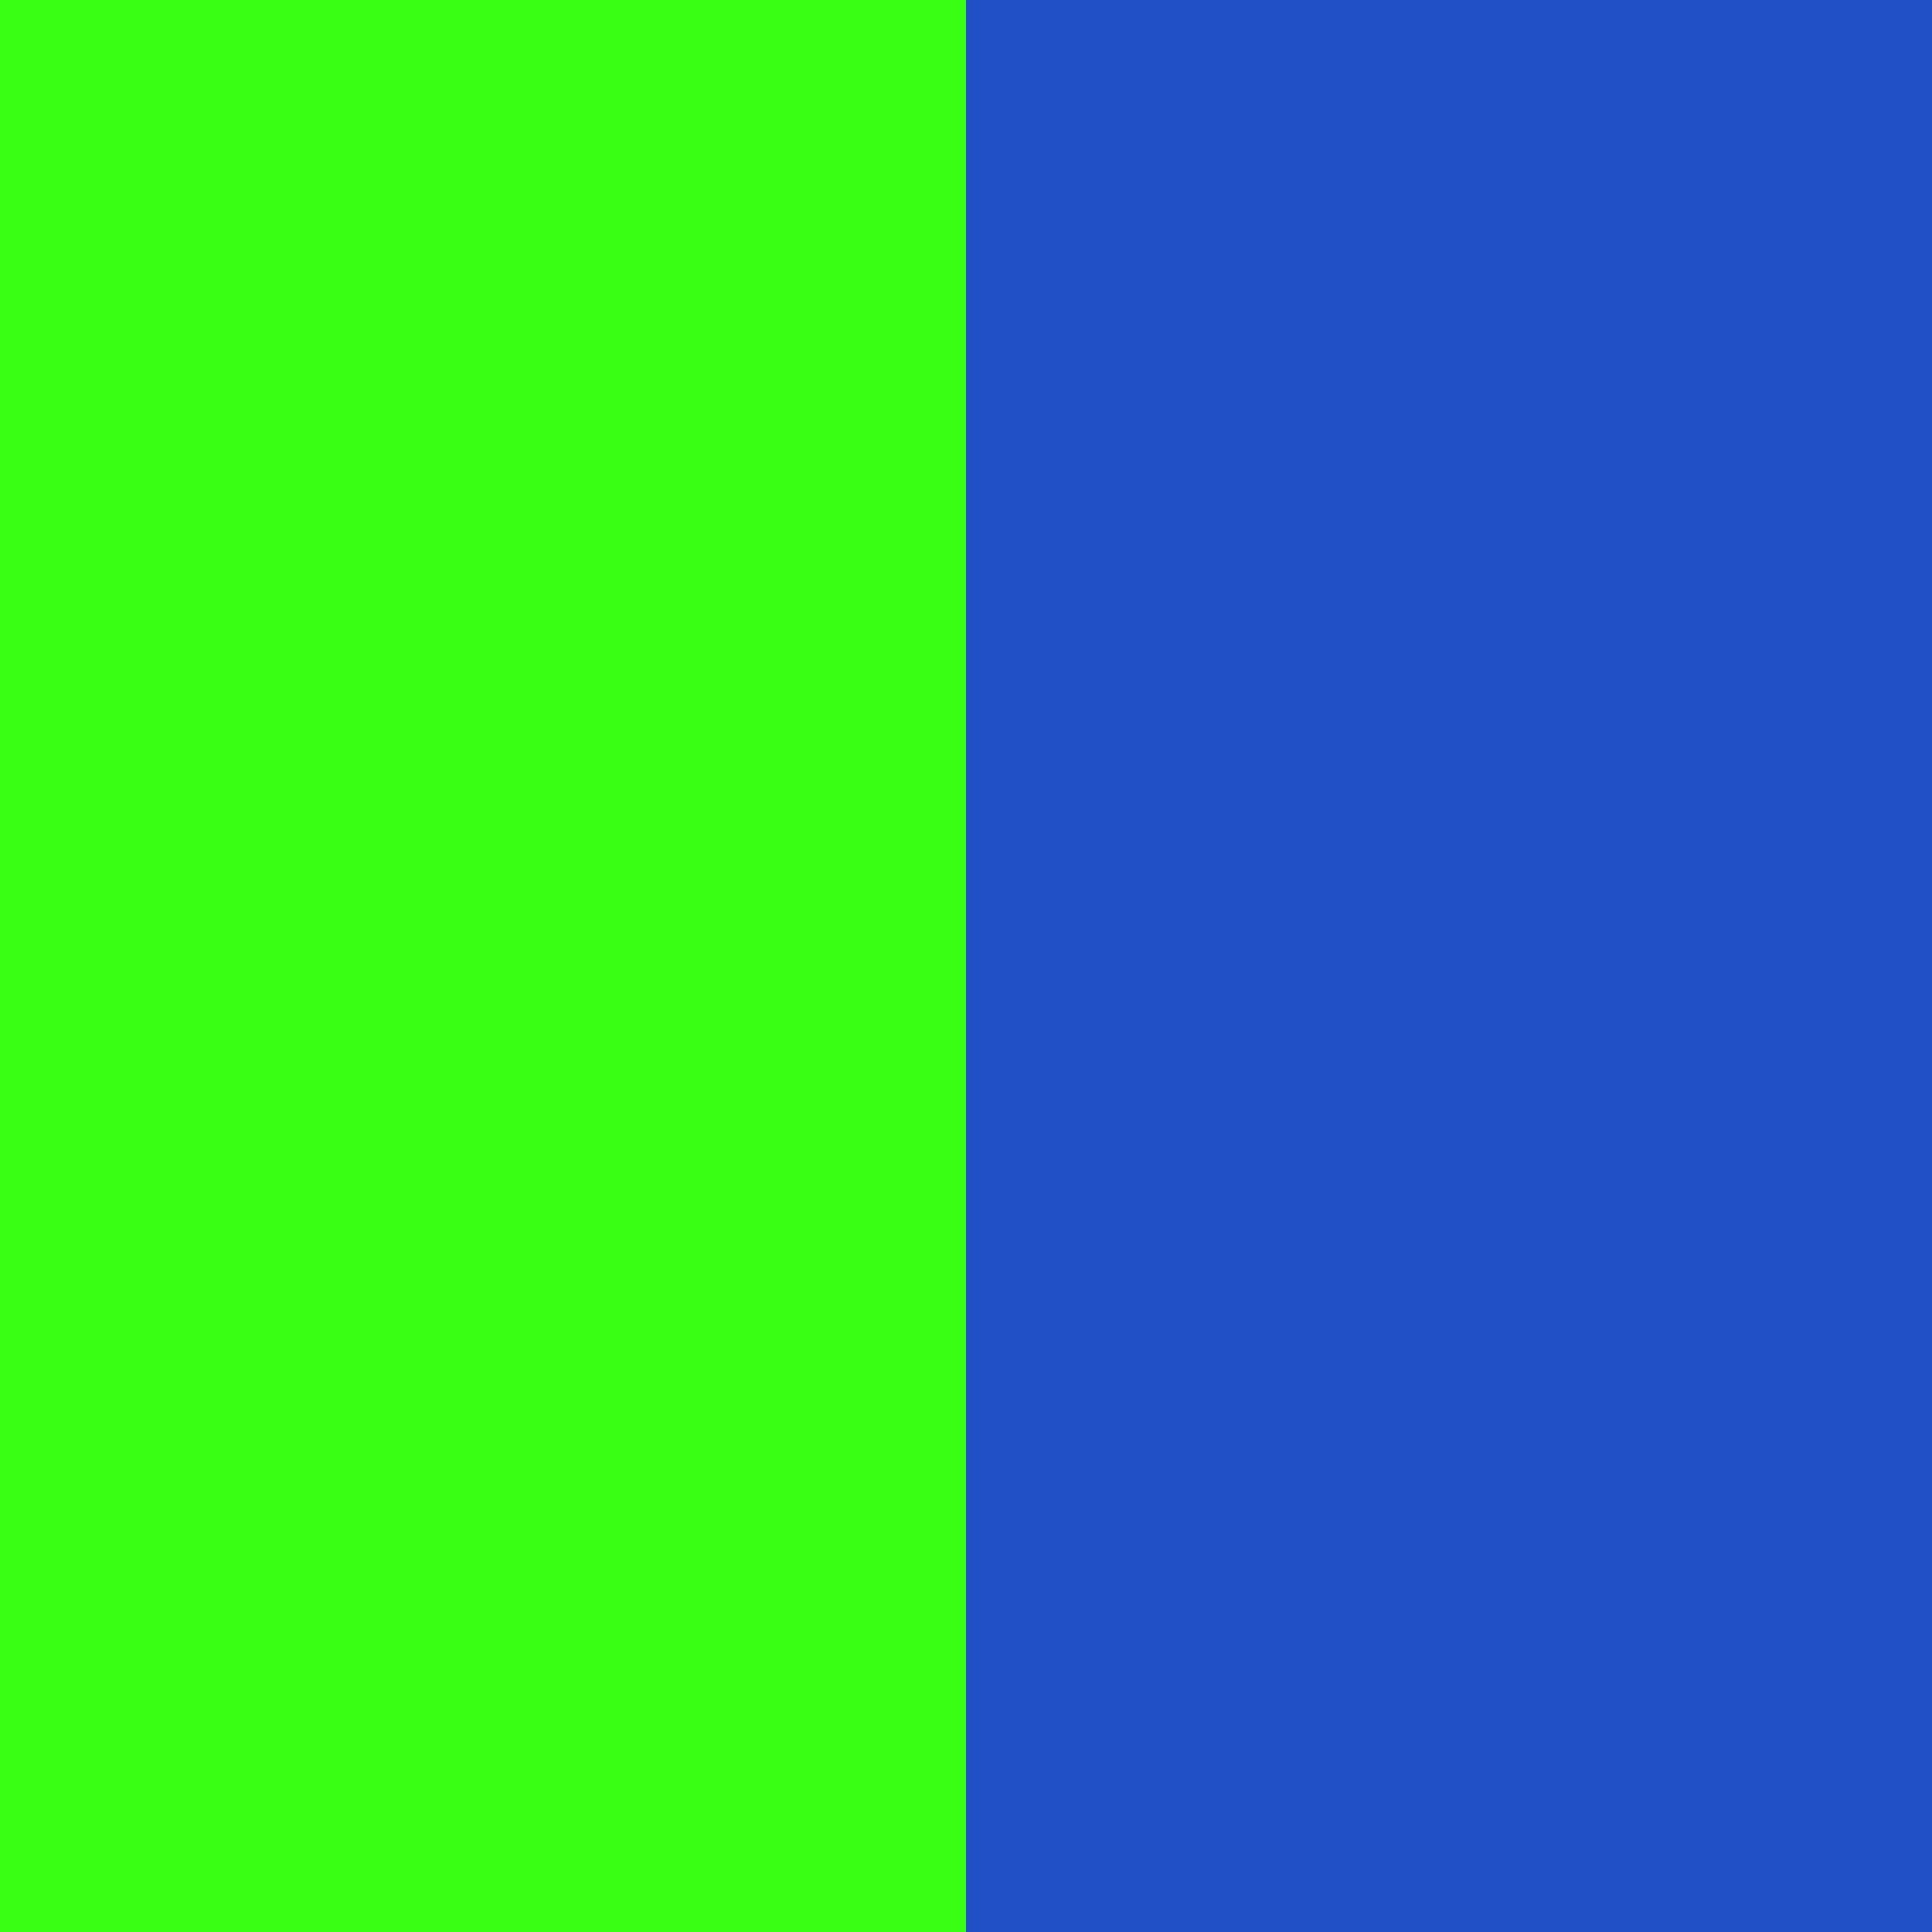 neon colors backgrounds 56 images